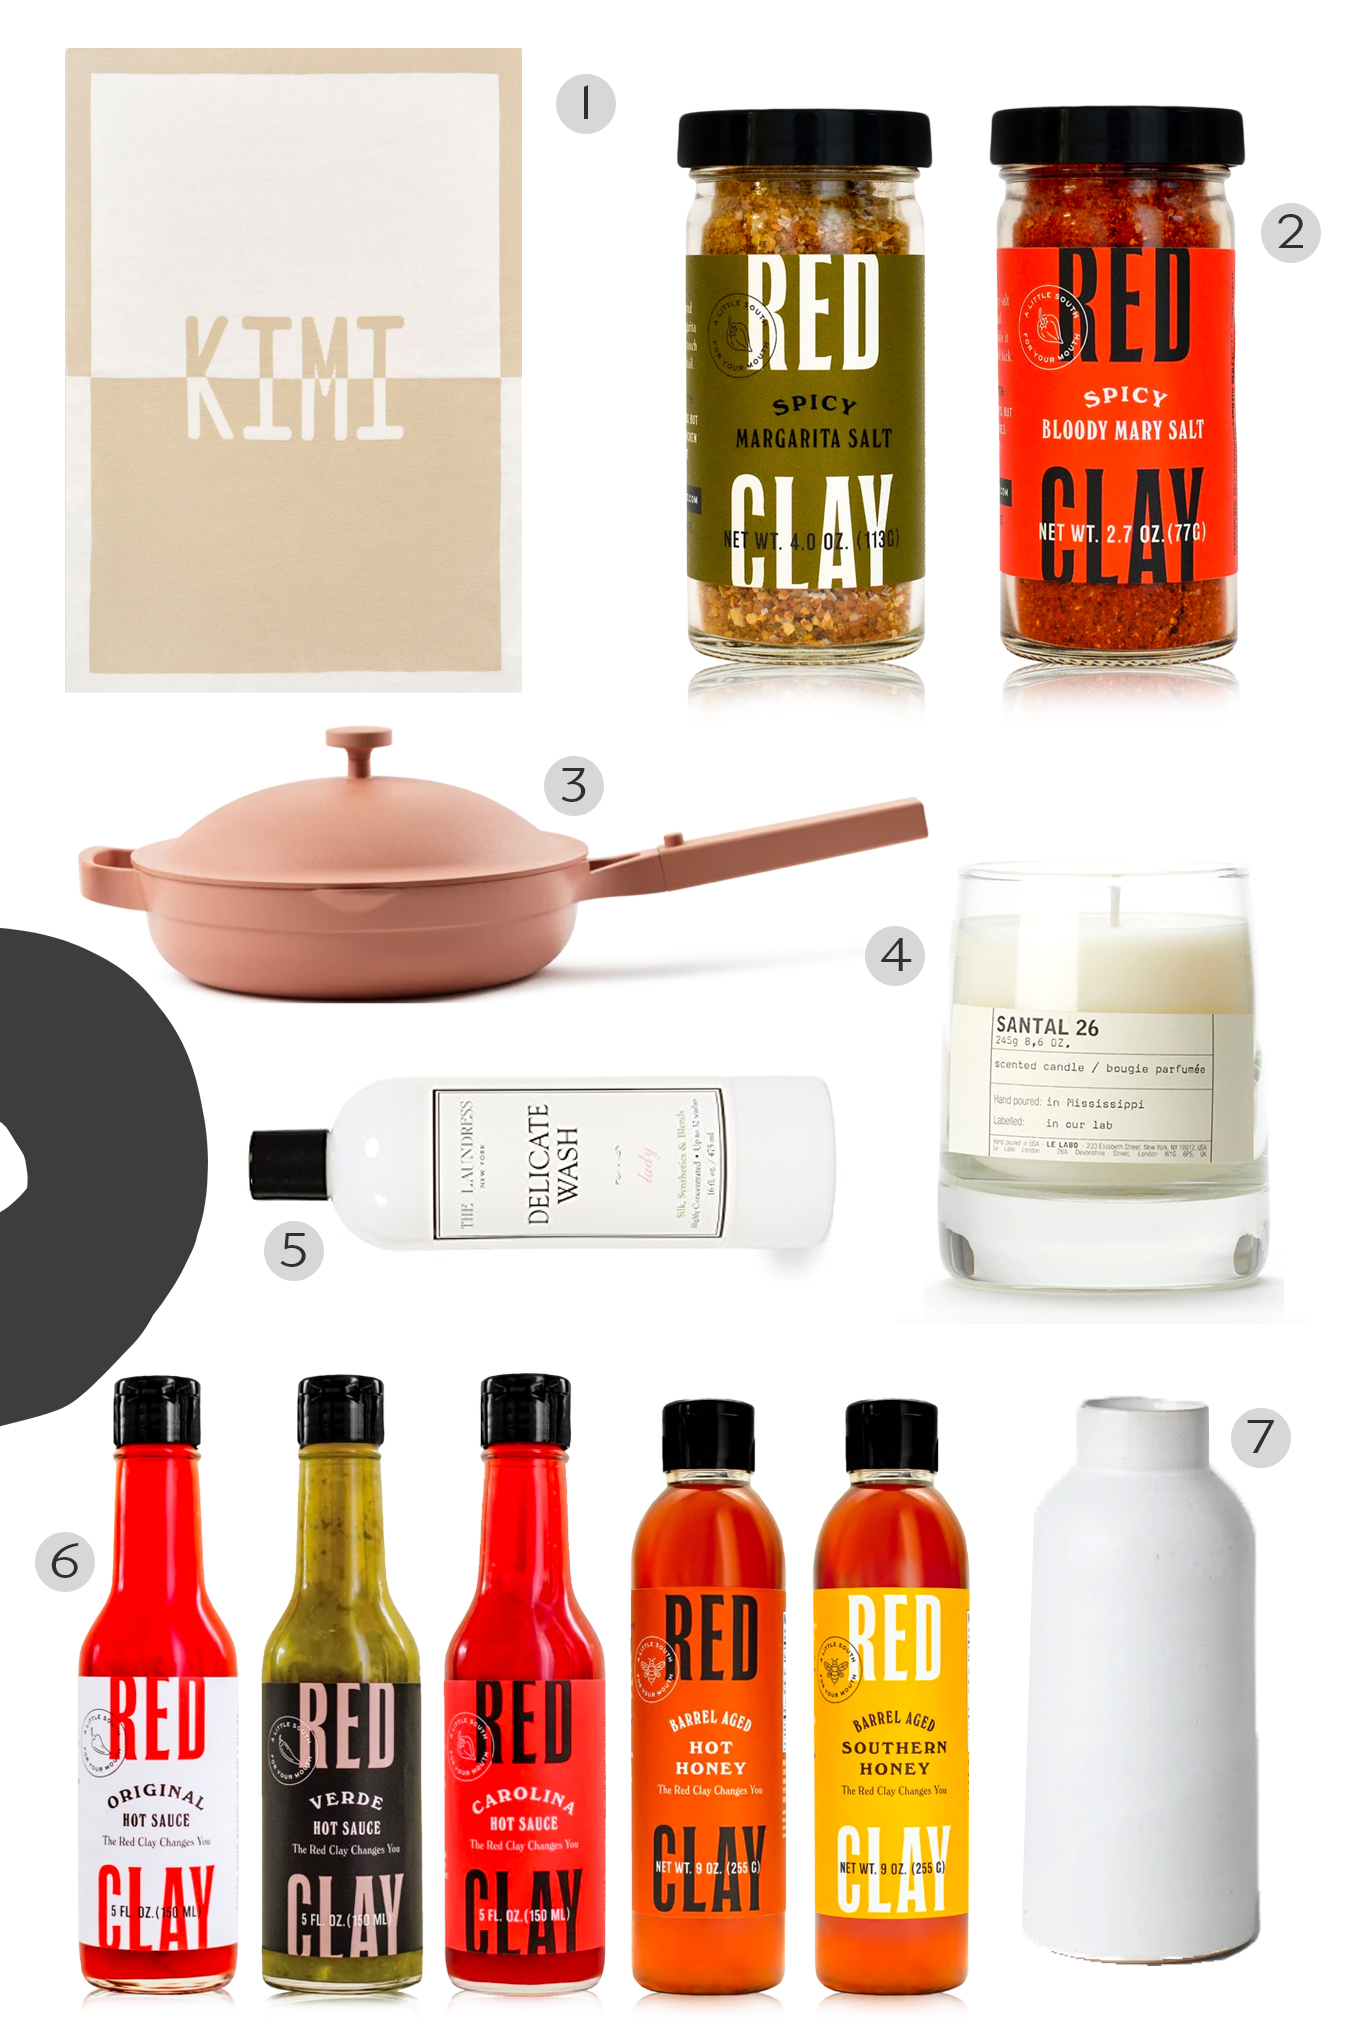 15 Really Great Gifts Ideas for Fathers Day